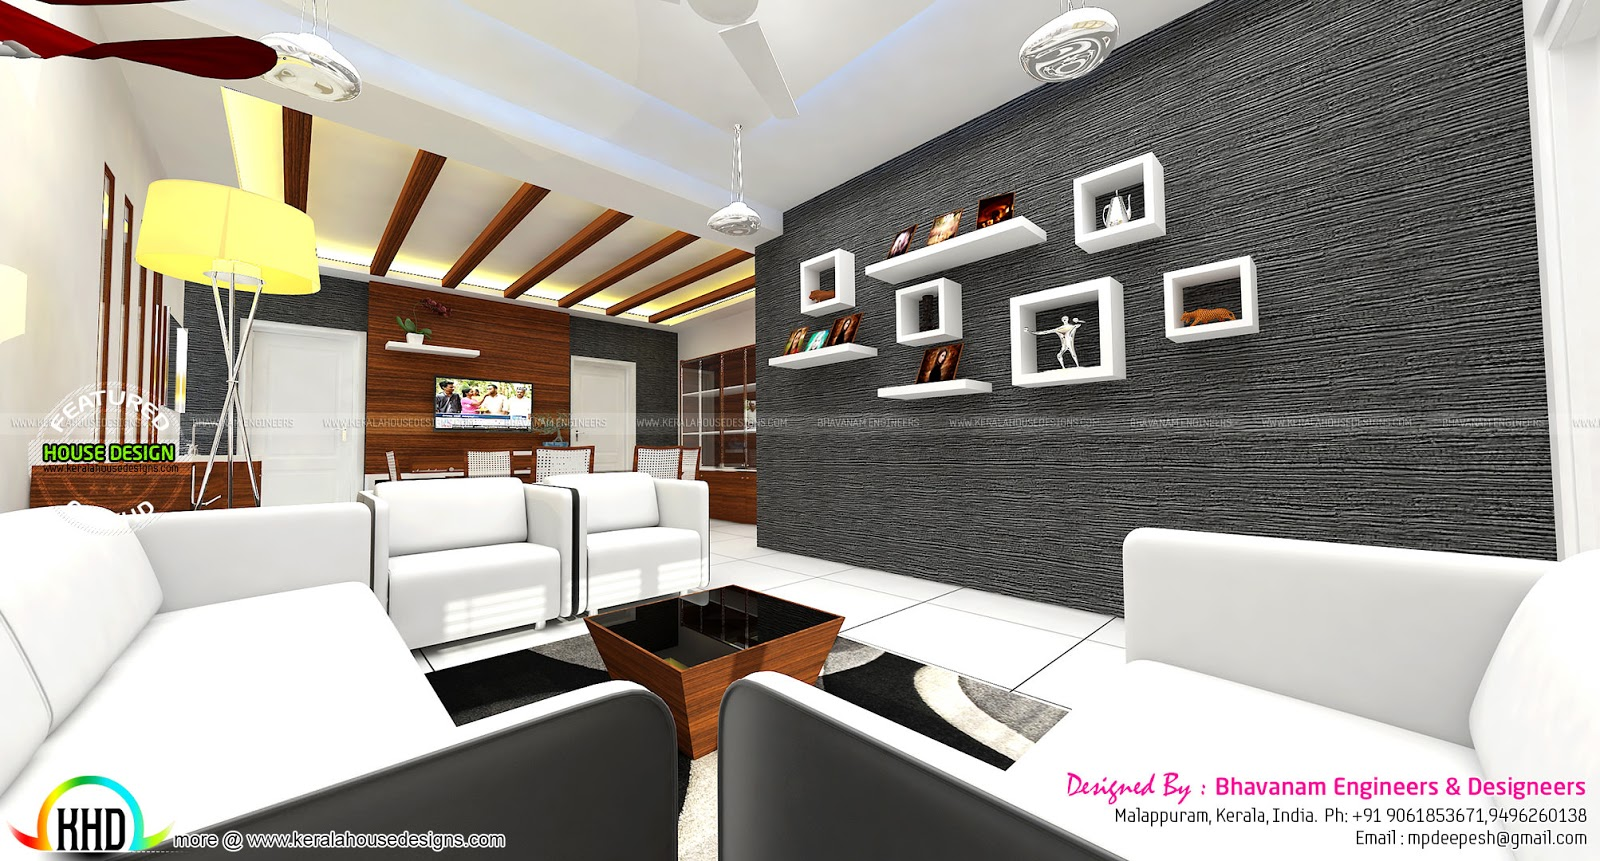 Living room interior decors ideas kerala home design and for Interior design living room kenya